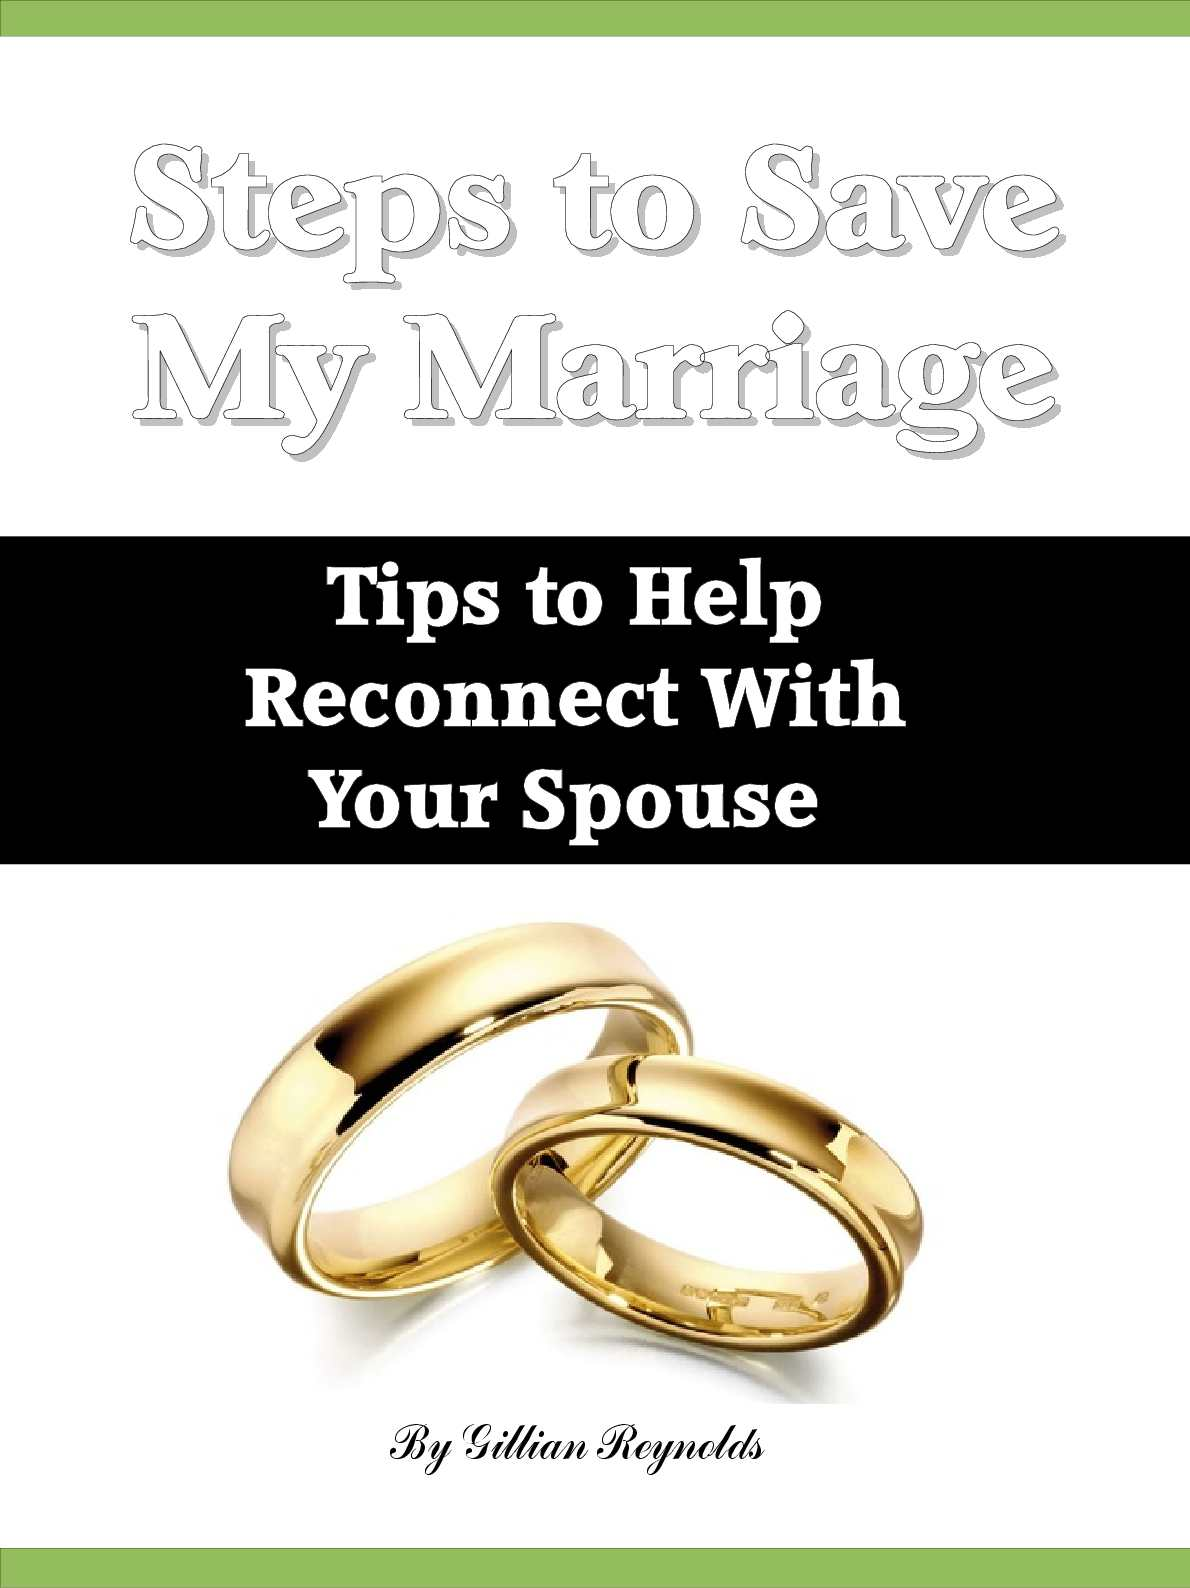 how do you reconnect with your spouse